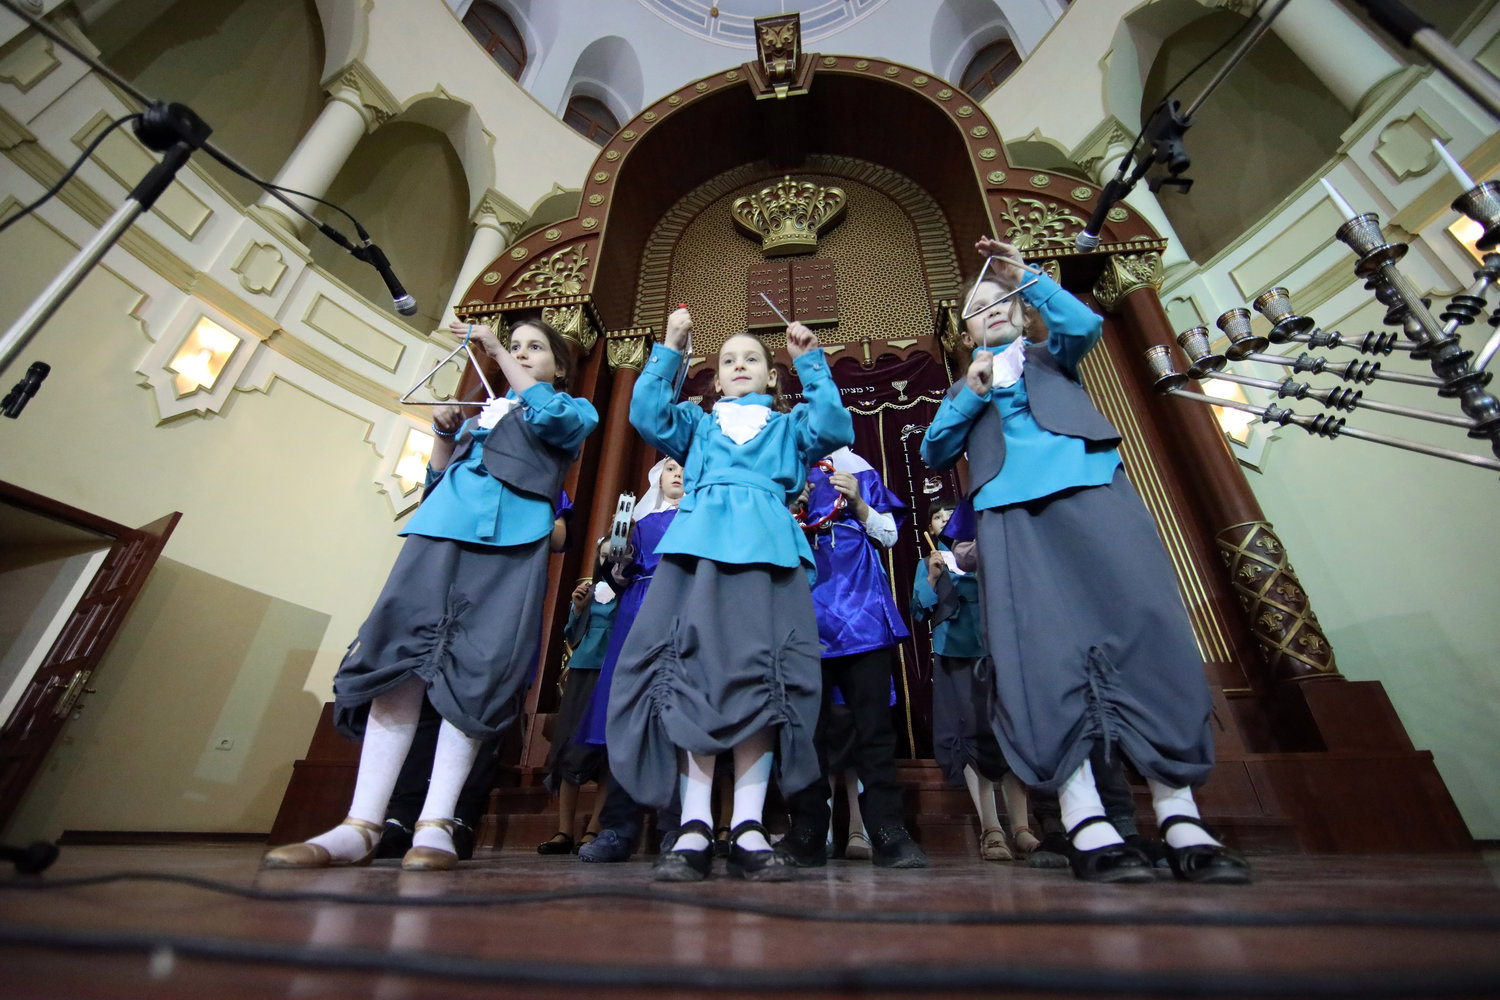 Children play musical instruments during the celebration of Hanukkah at the Kharkiv Choral Synagogue, Kharkiv, northeastern Ukraine, December 5, 2018. Also known as the Festival of Lights, the holiday is observed for eight nights and days. This year, the festivities take place on December 2-10. Ukrinform. (Photo credit Vyacheslav Madiyevskyy / Barcroft Media via Getty Images)